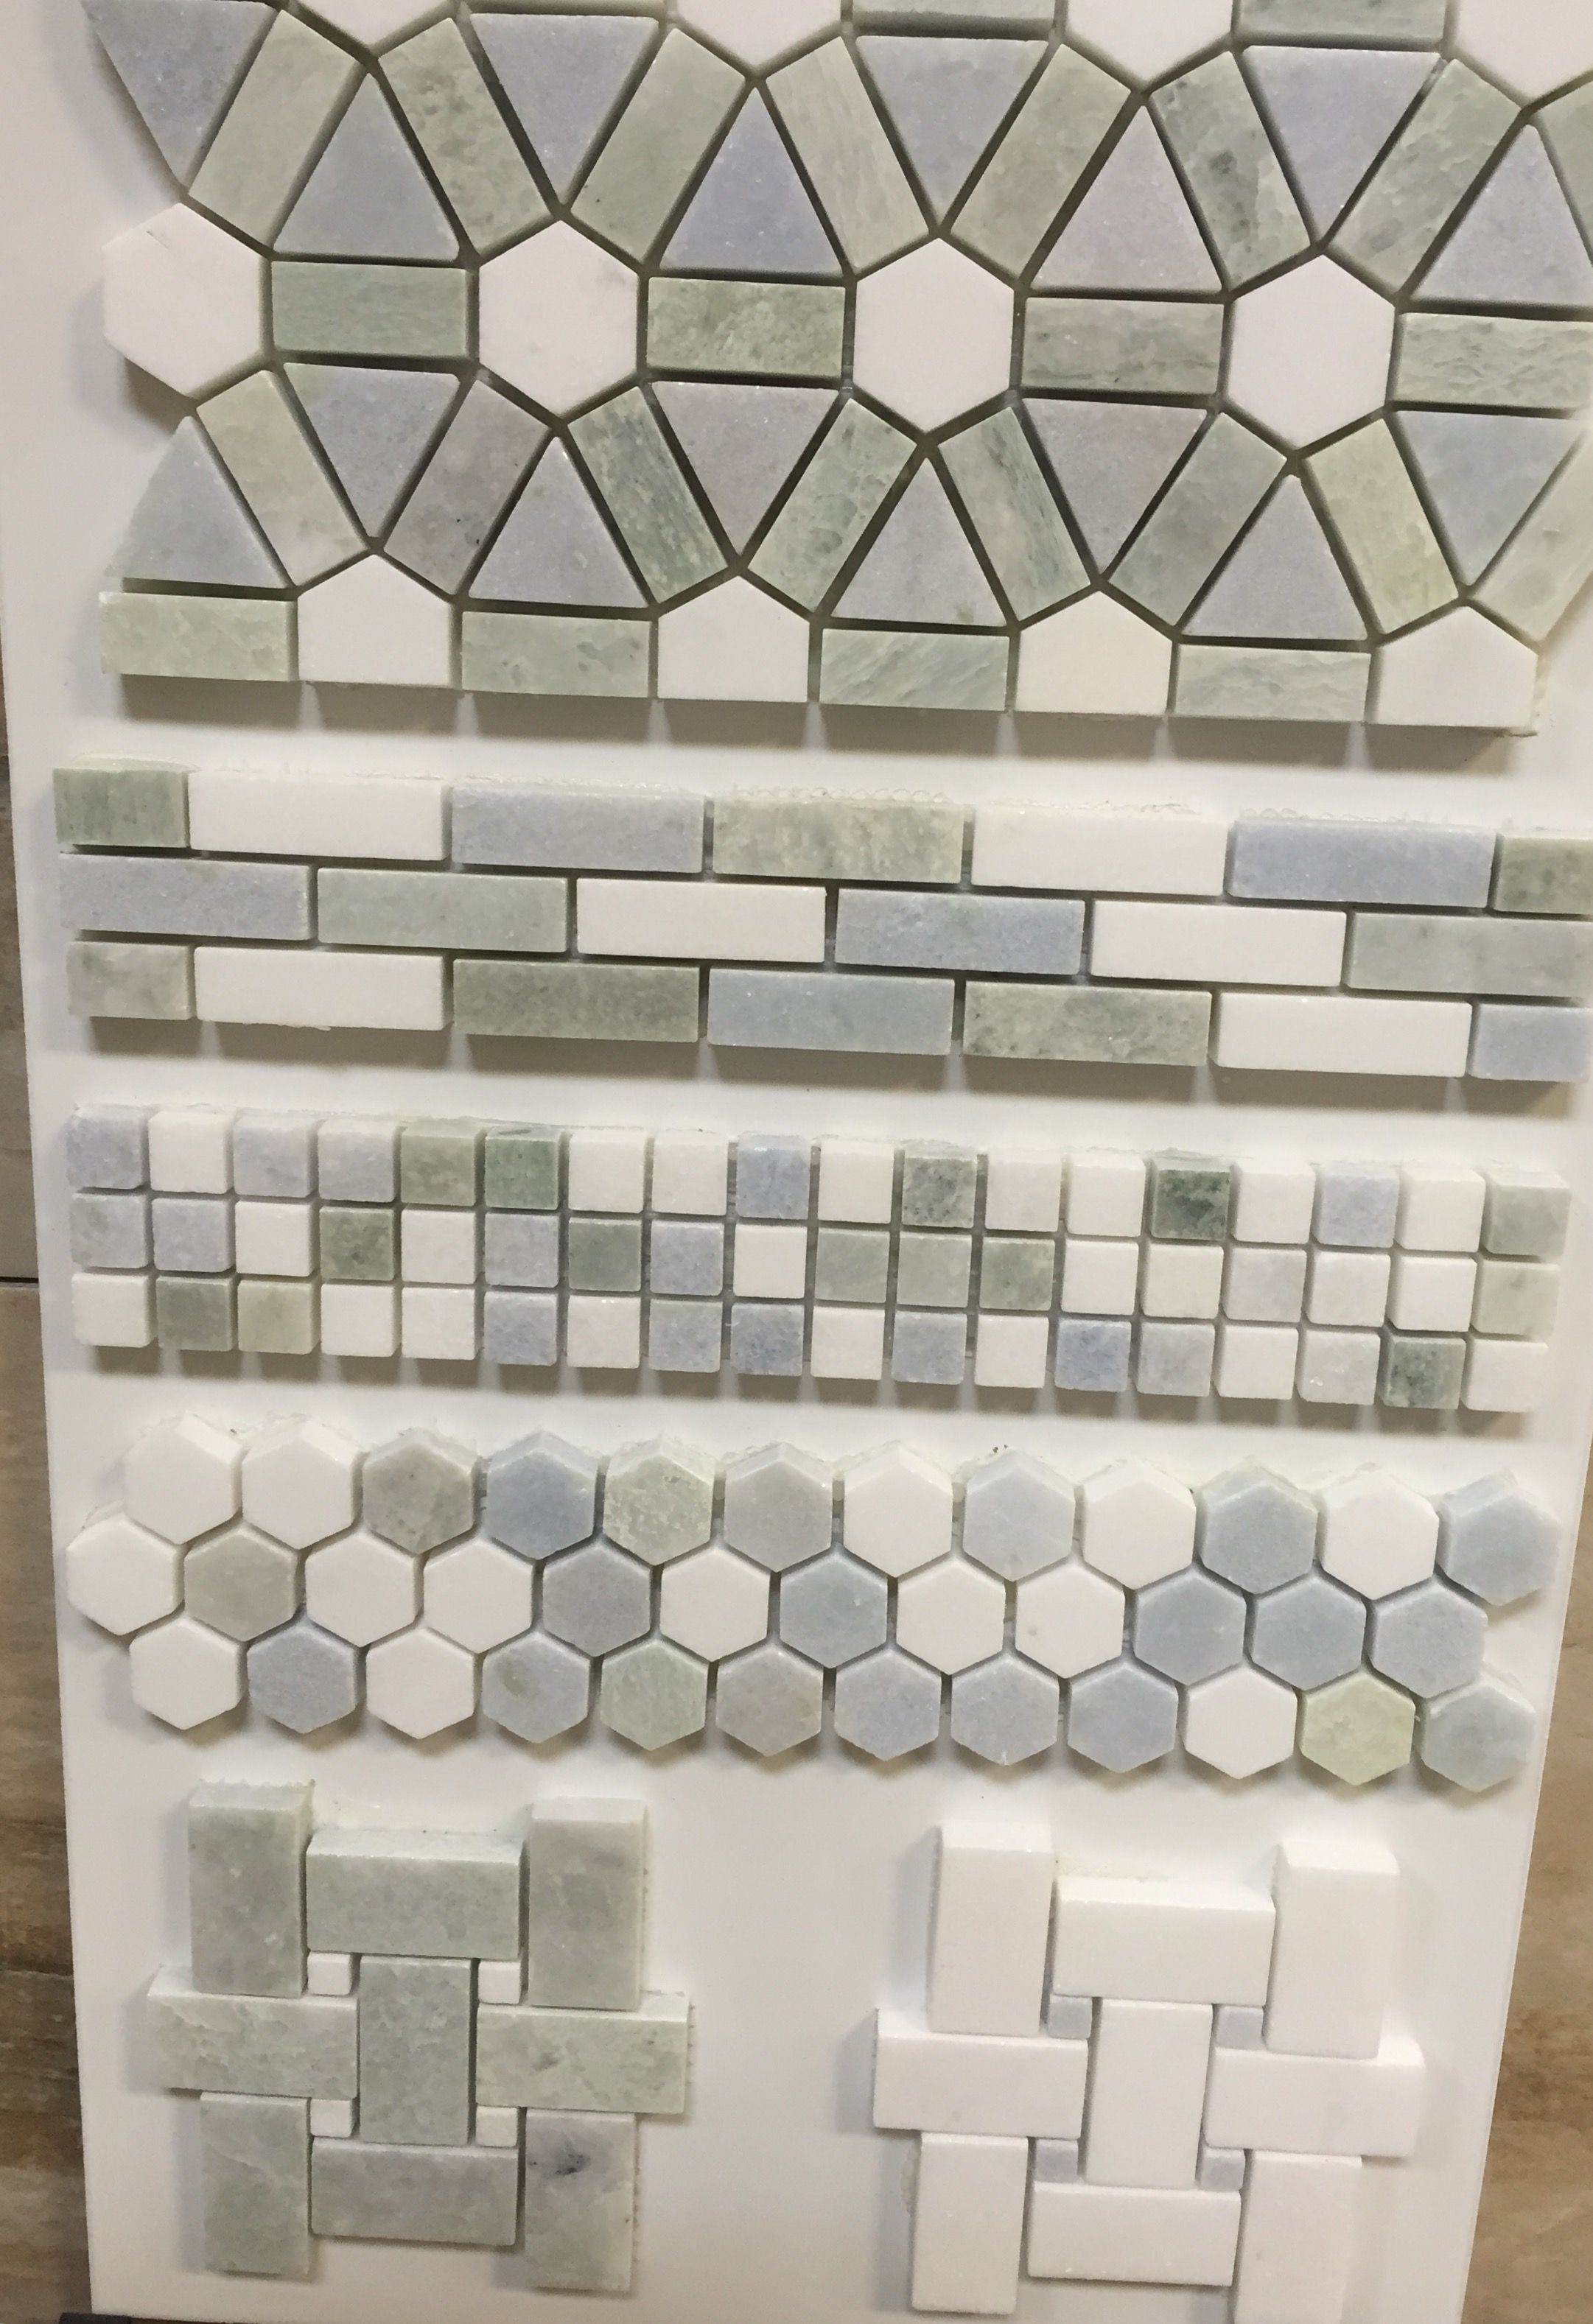 Second Floor Master Bath Tile for placement above vanity around ...